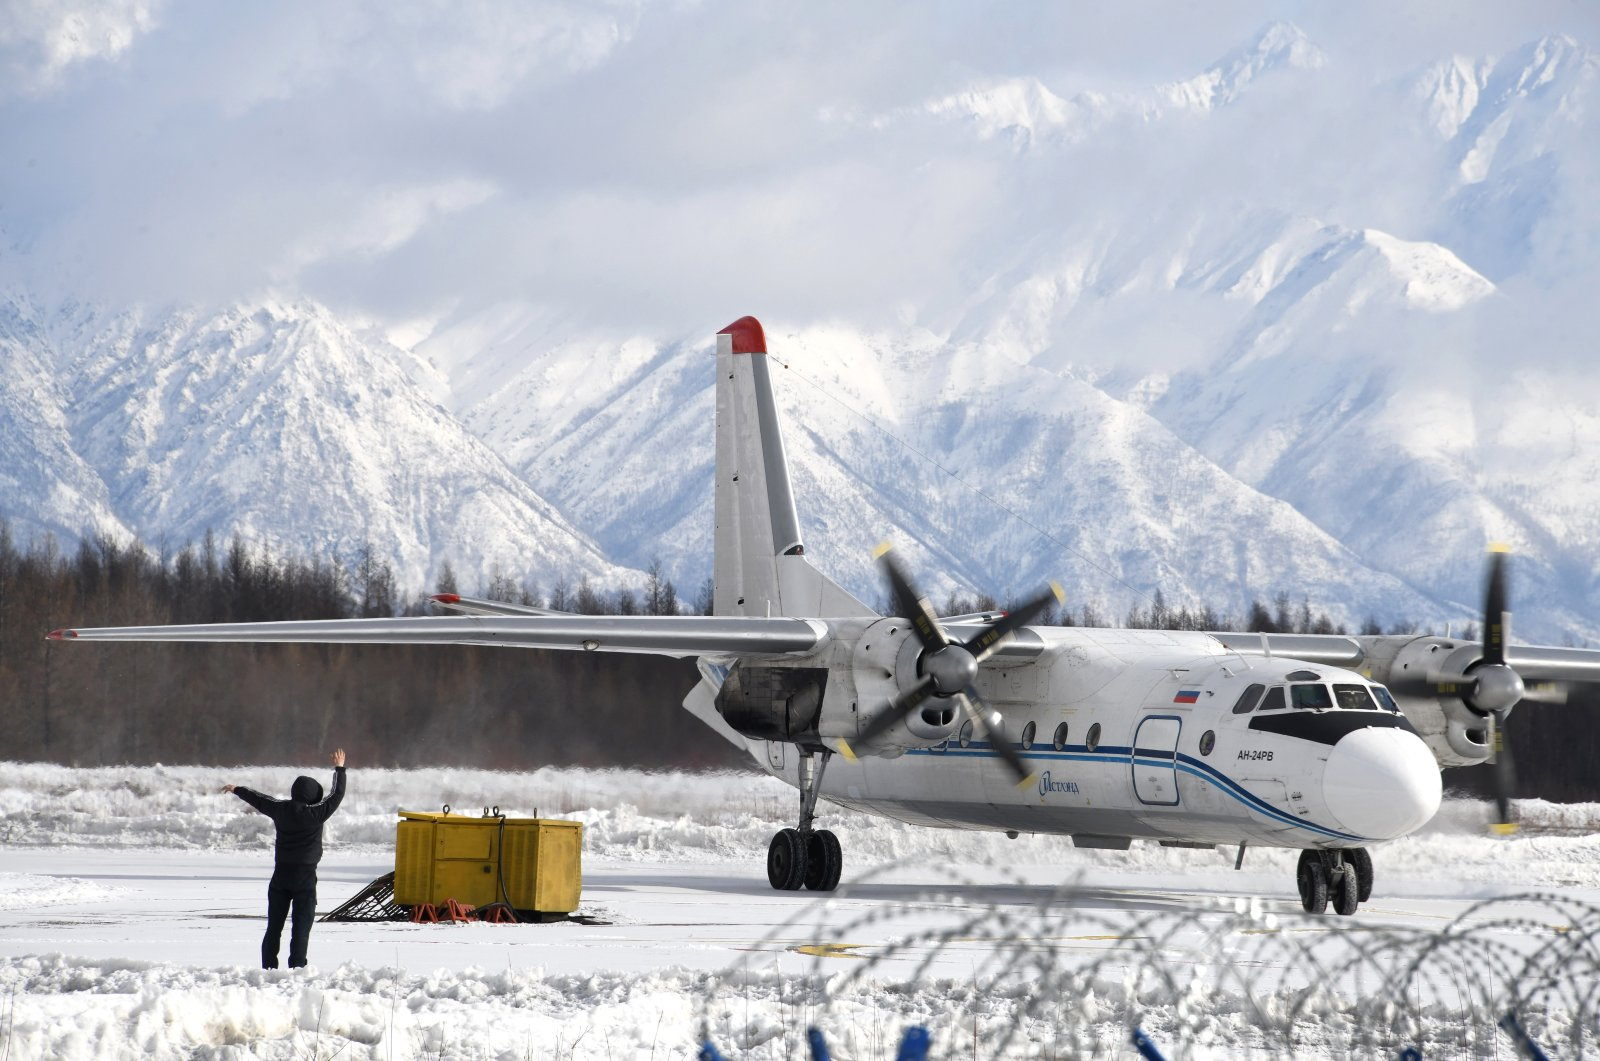 An Antonov An-24, similar to the one that disappeared near the Kamchatka Peninsula, prepares for takeoff at the Chara Airport in Transbaikalia, Russia. (Getty Images)